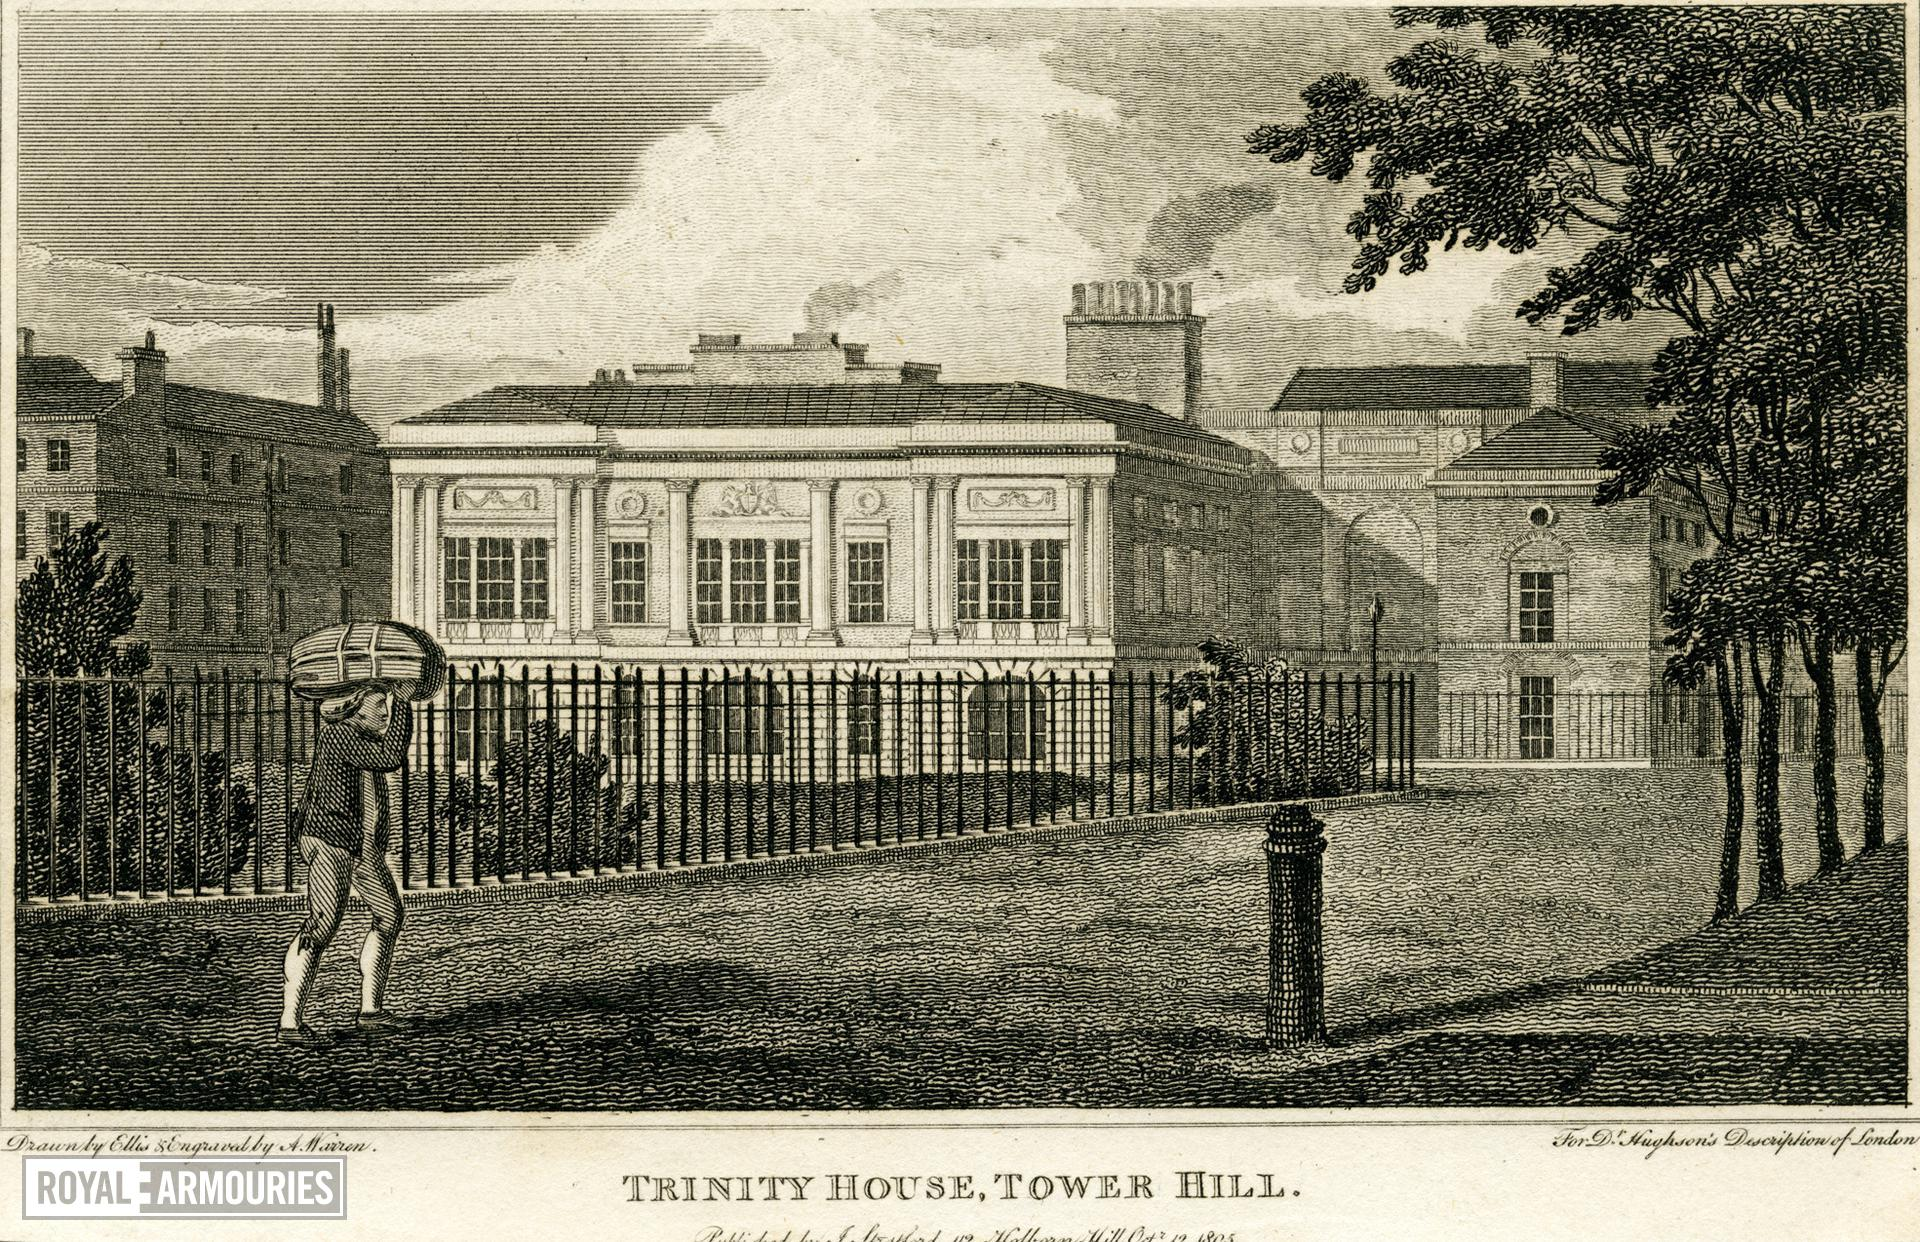 Print 'Trinity House, Tower Hill'